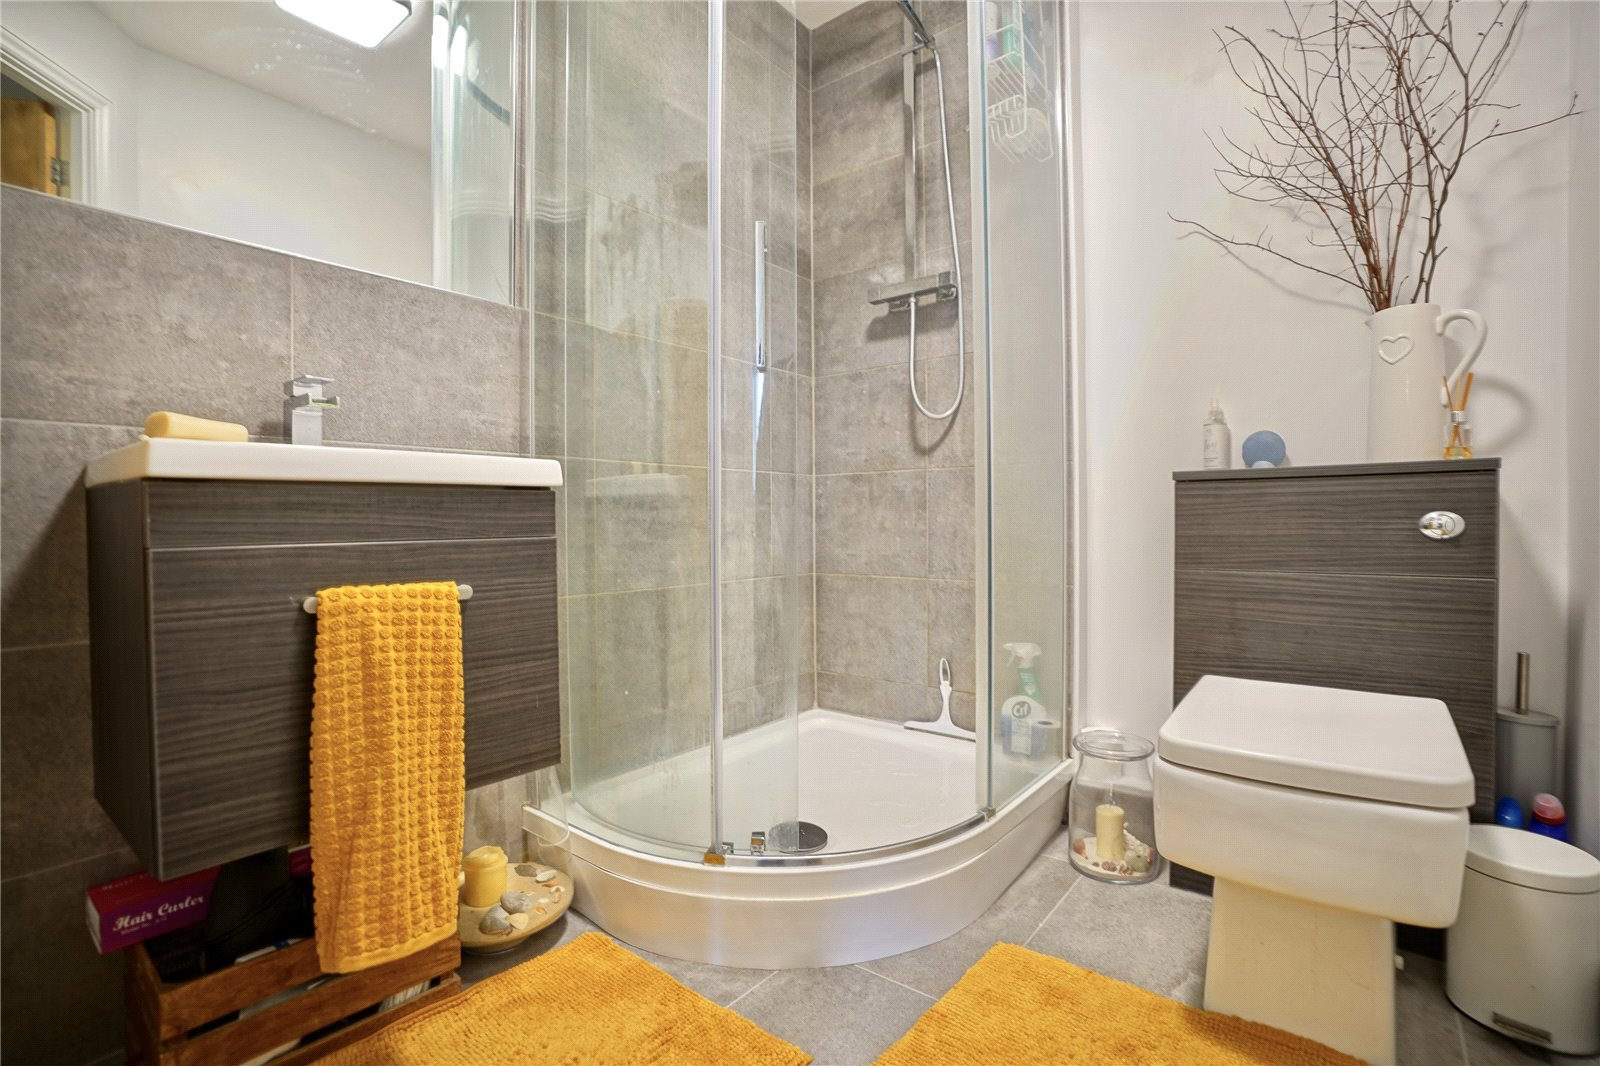 2 bed apartment for sale in St. Ives, PE27 5QL 7